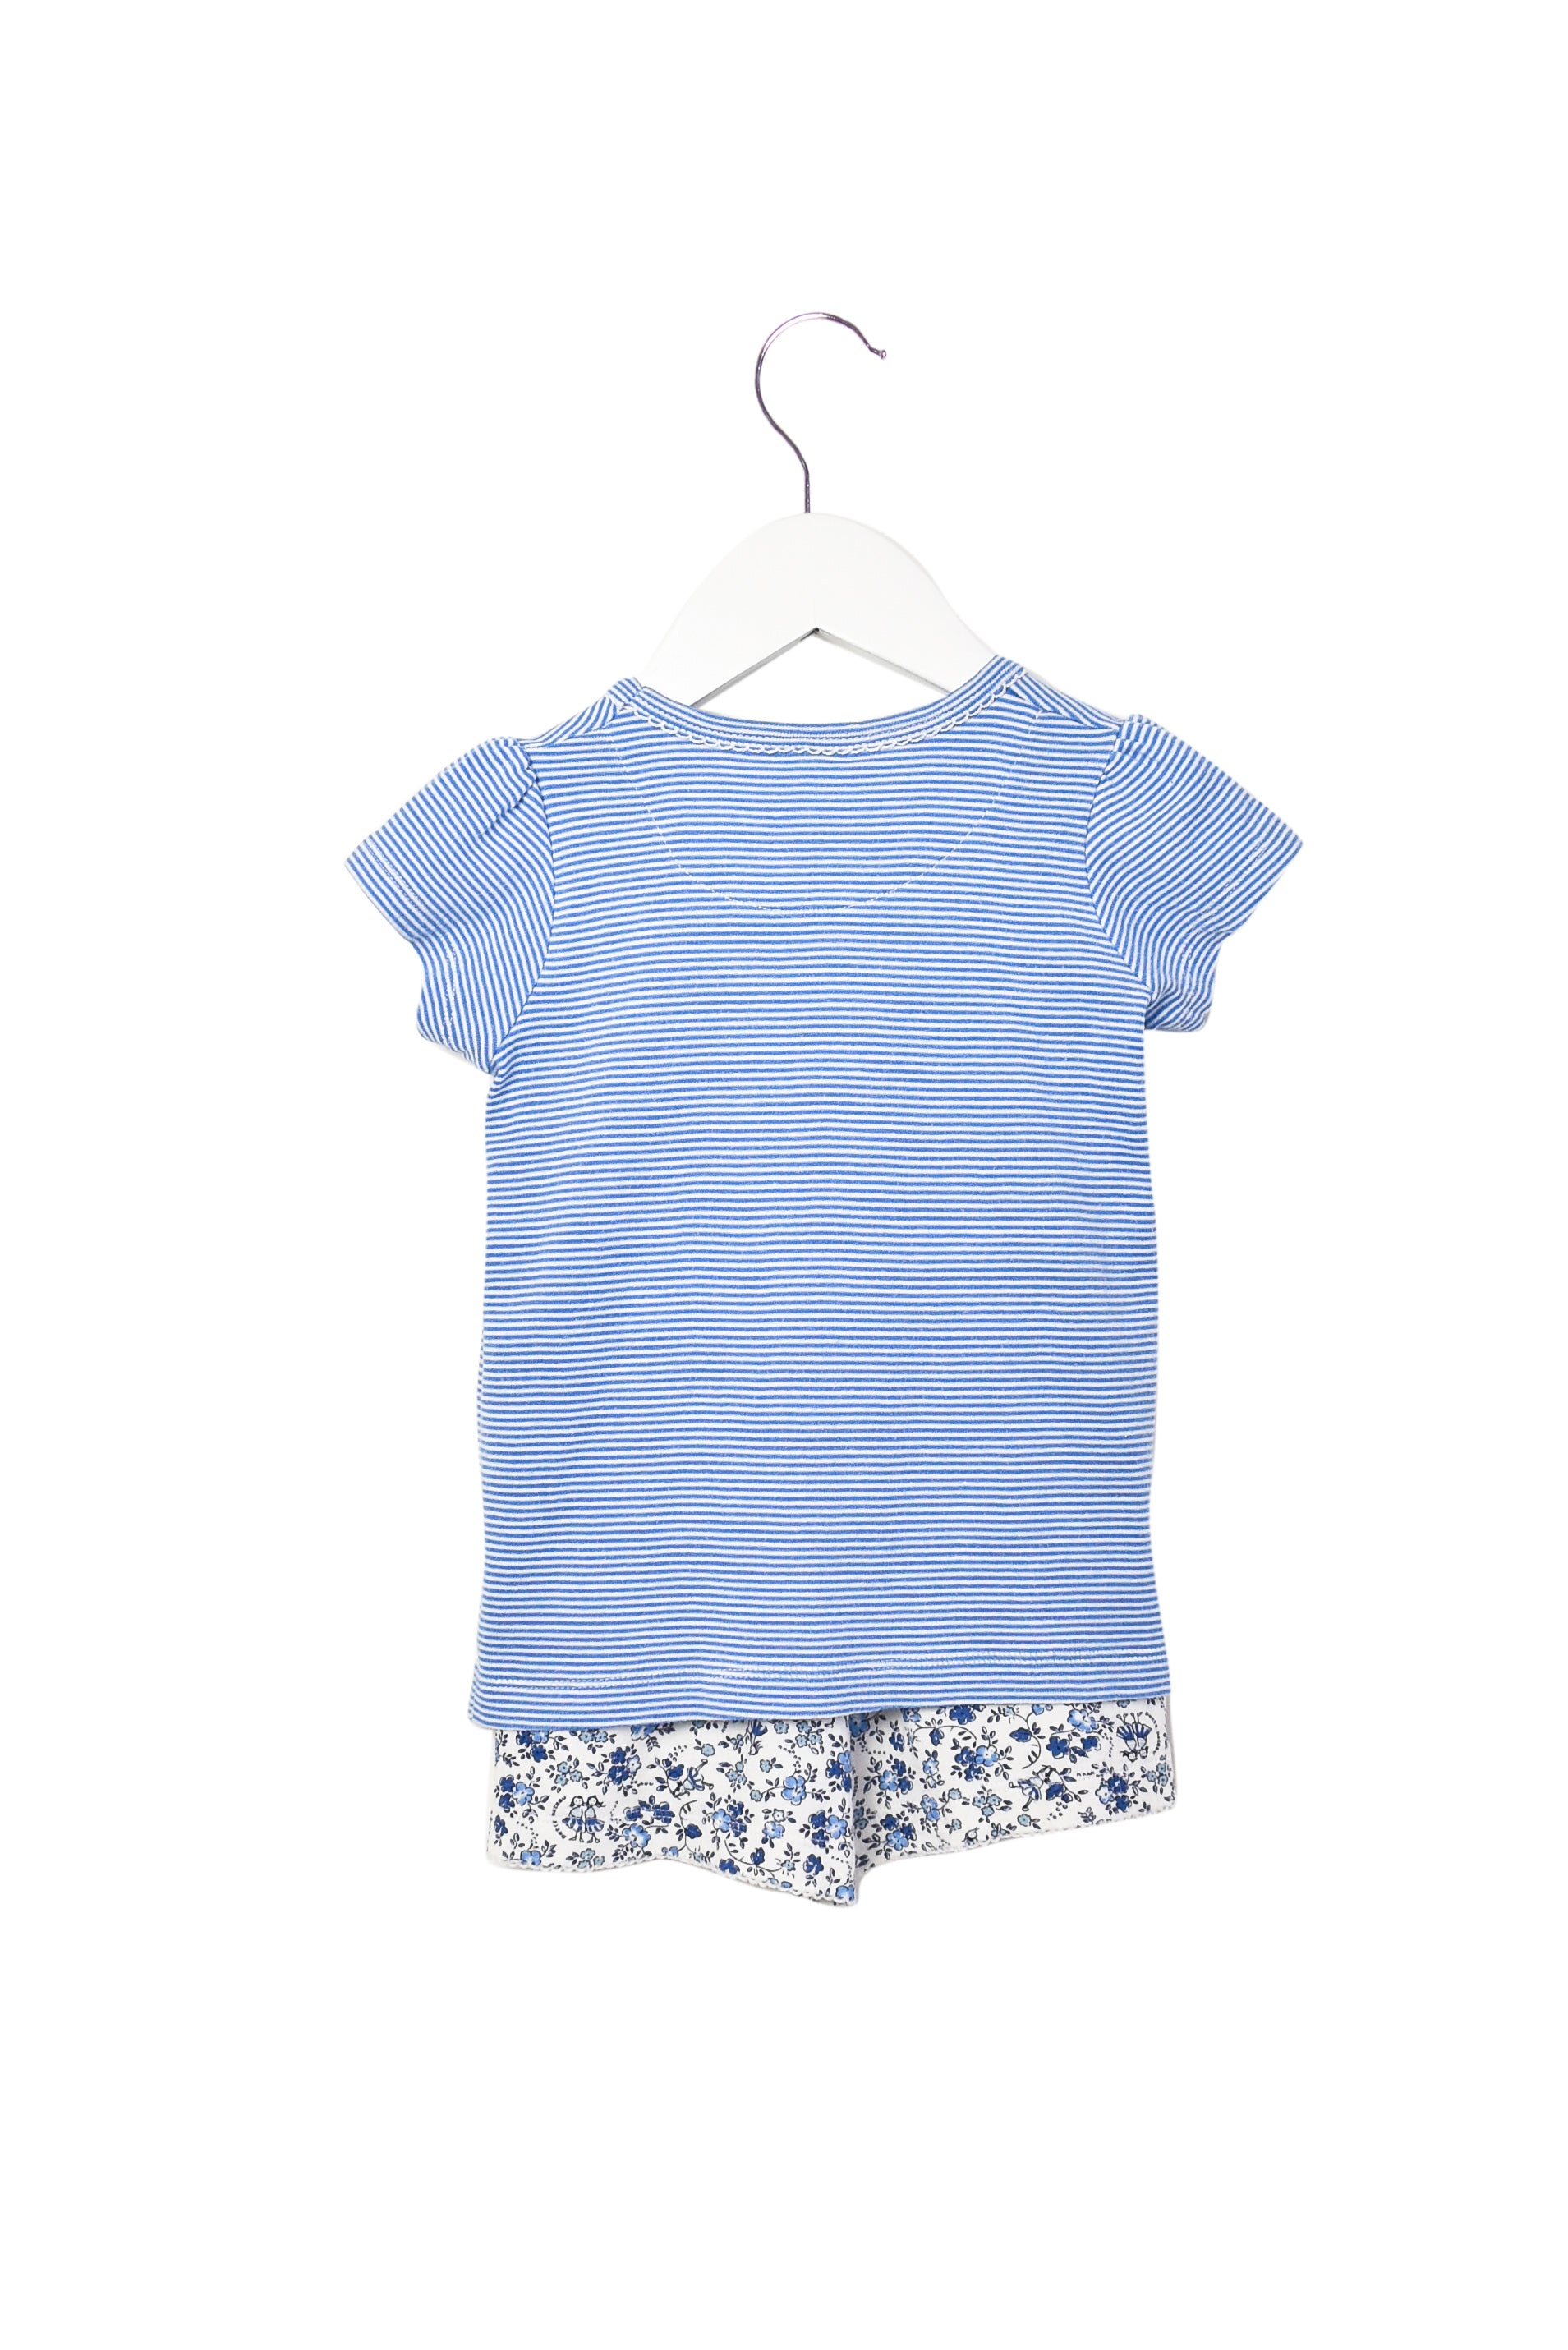 10008454 Petit Bateau Kids~Top and Shorts Set 3T at Retykle